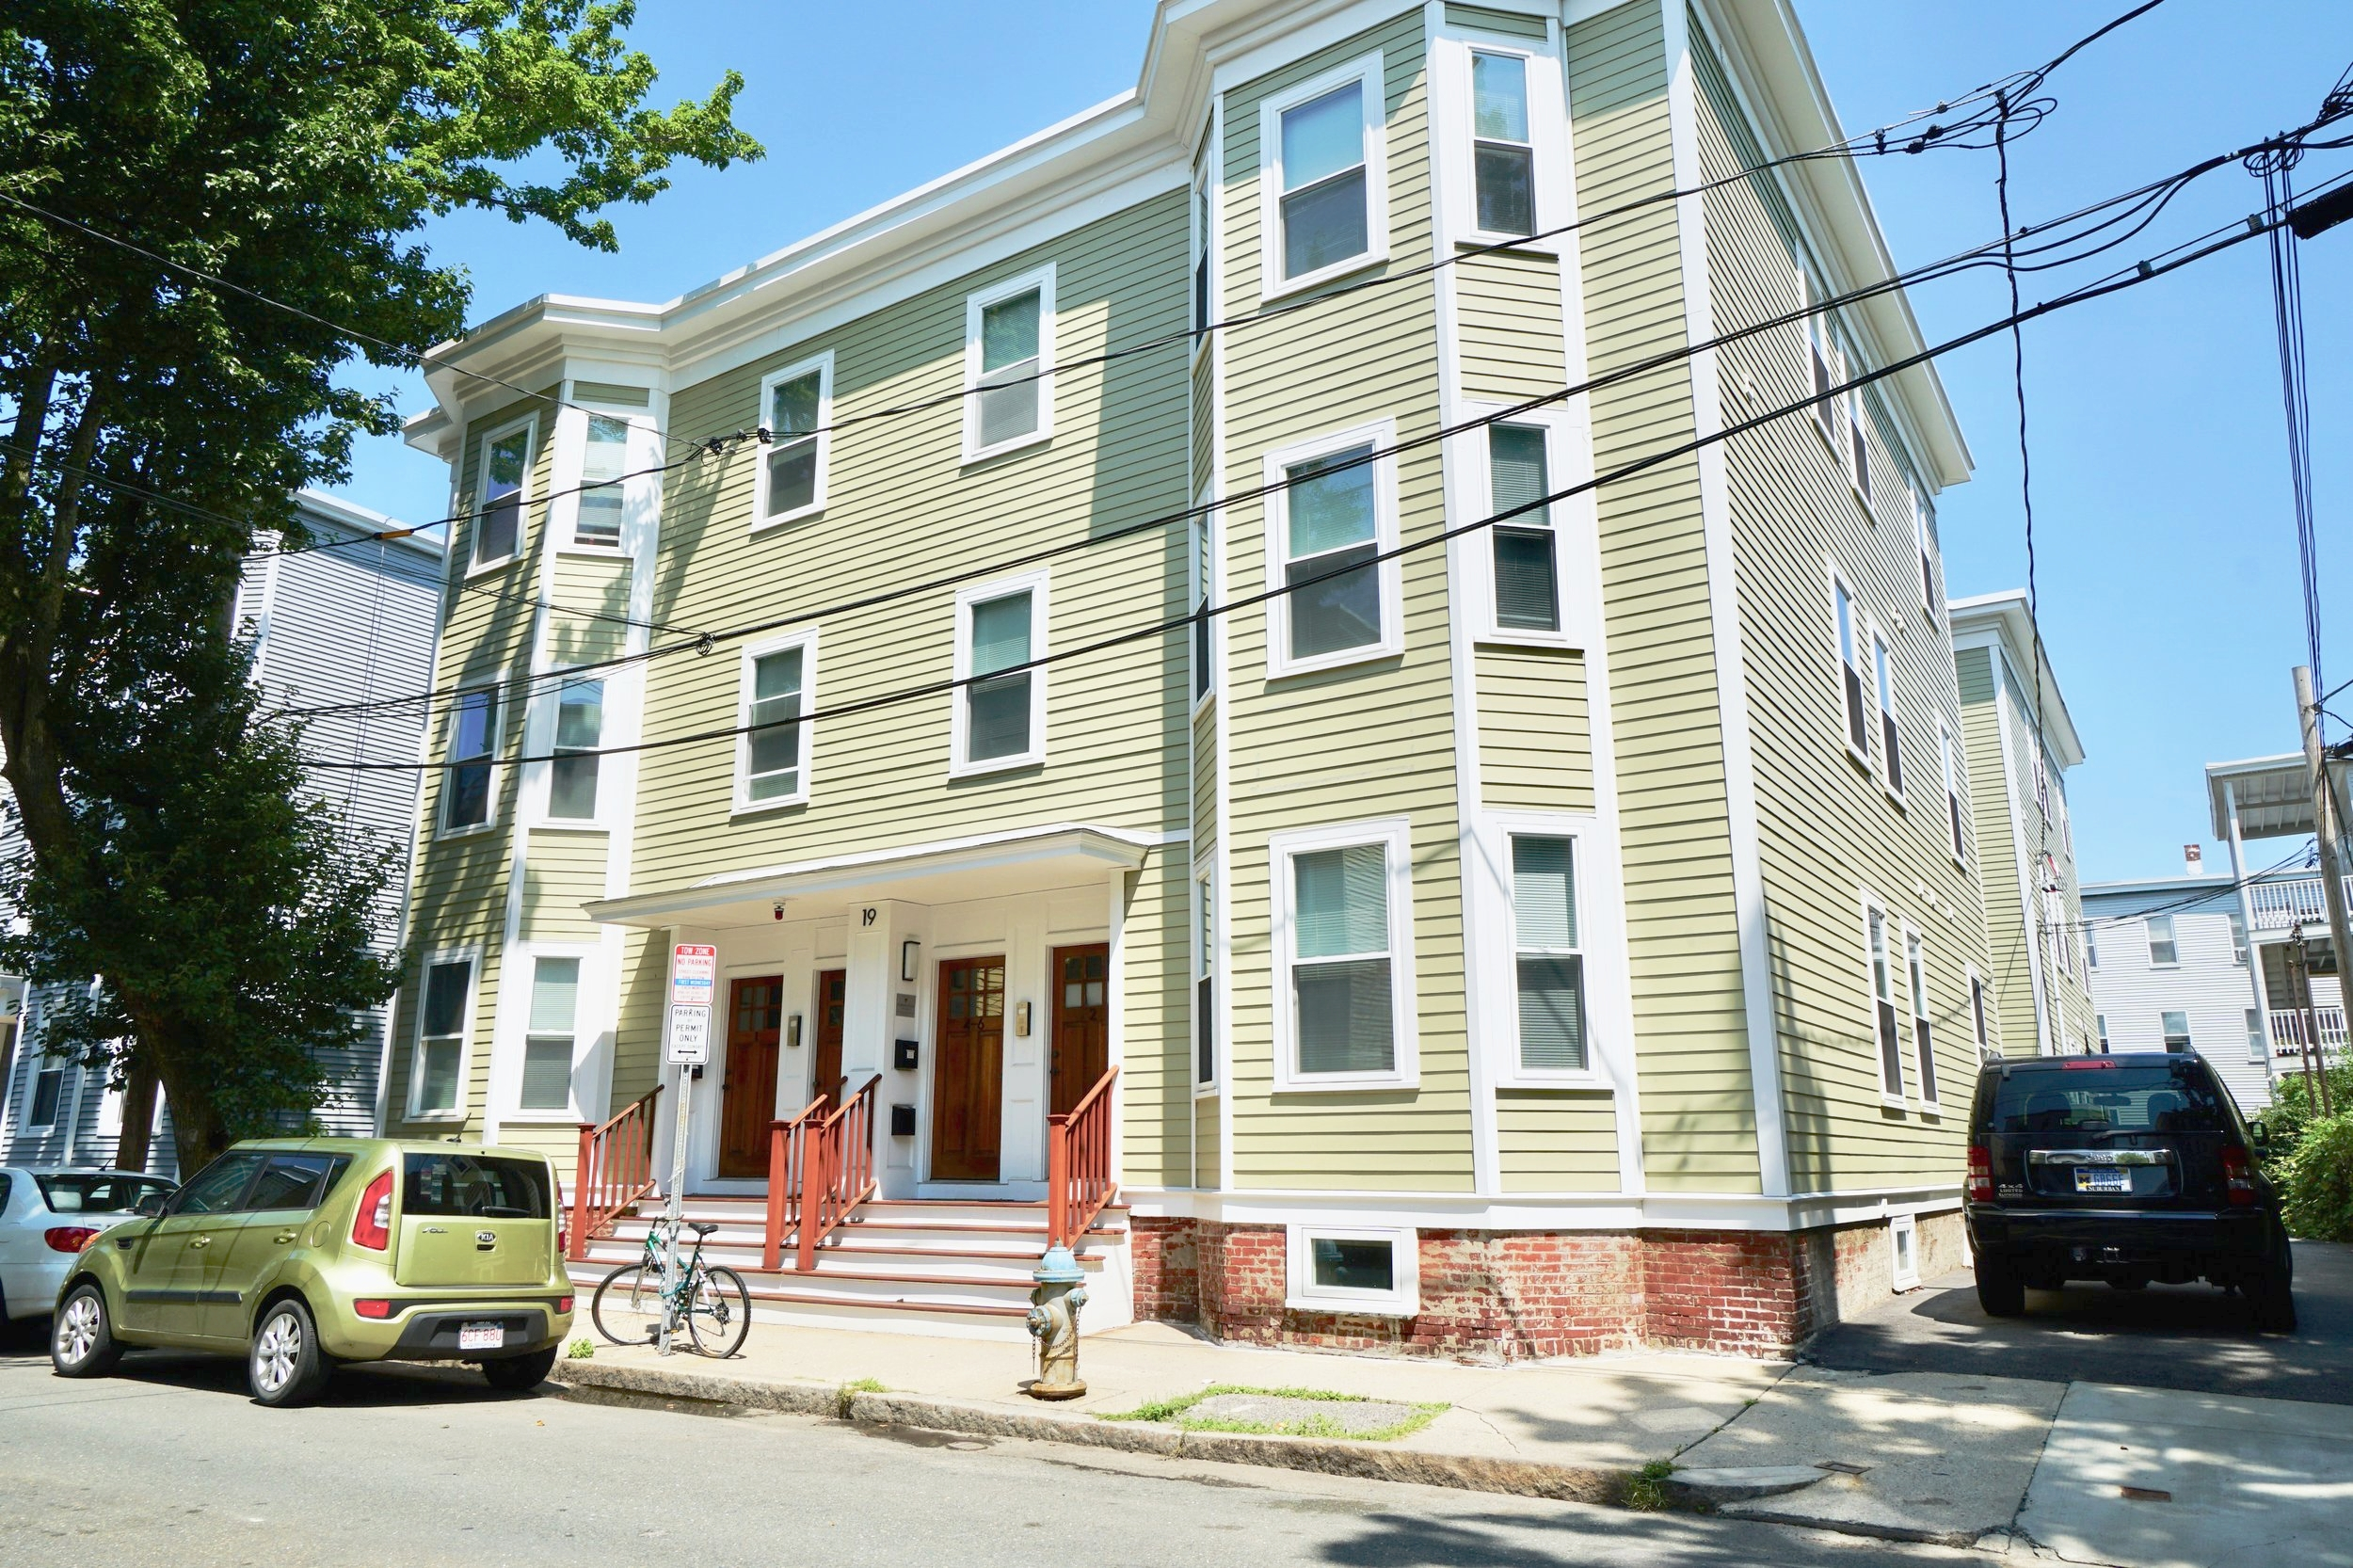 15-19 MARNEY STREET - CAMBRIDGE, MA